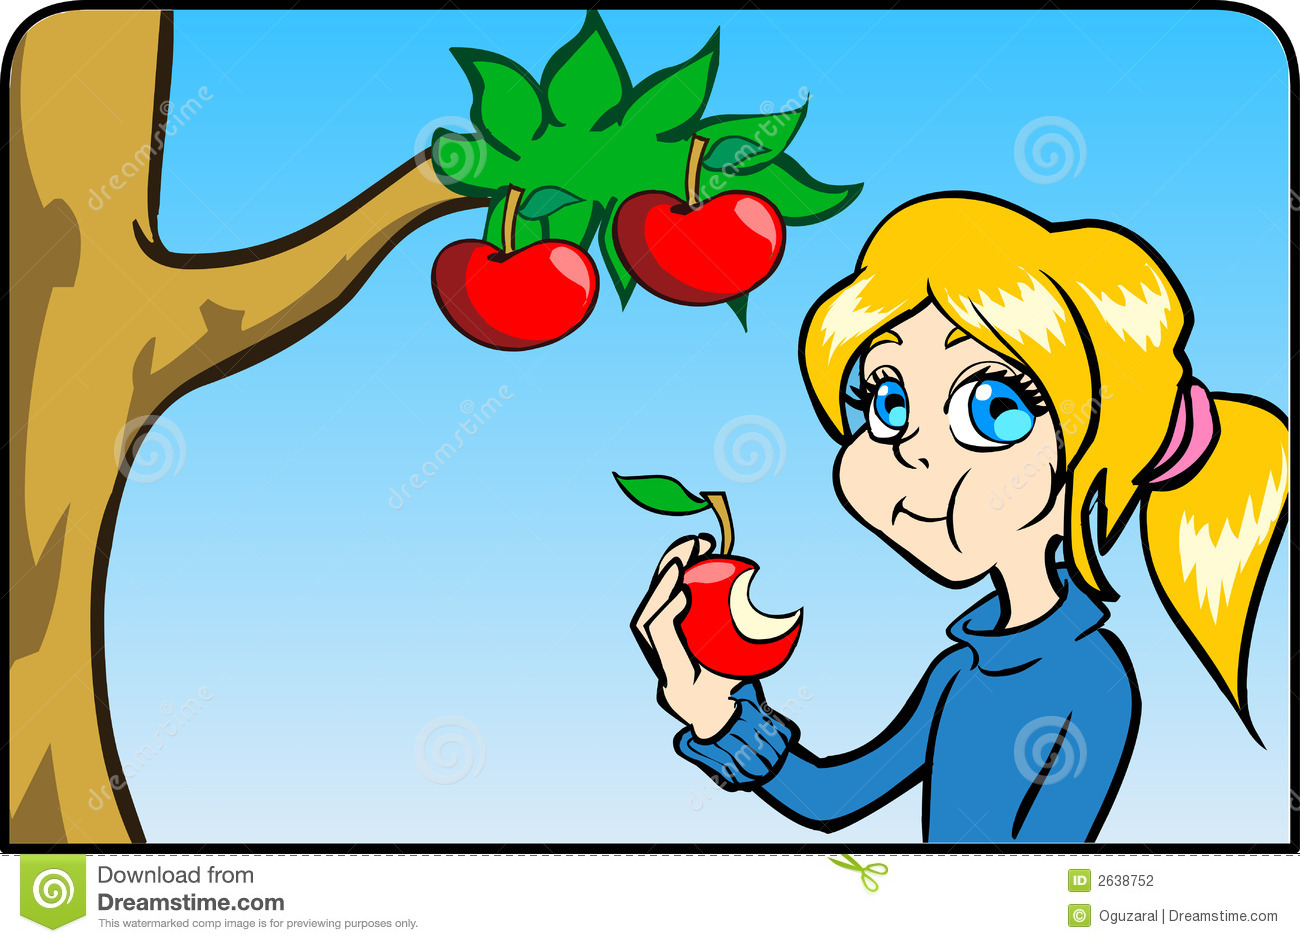 Apple eating apple clipart clipart freeuse download Teal apple clipart - ClipartFest clipart freeuse download